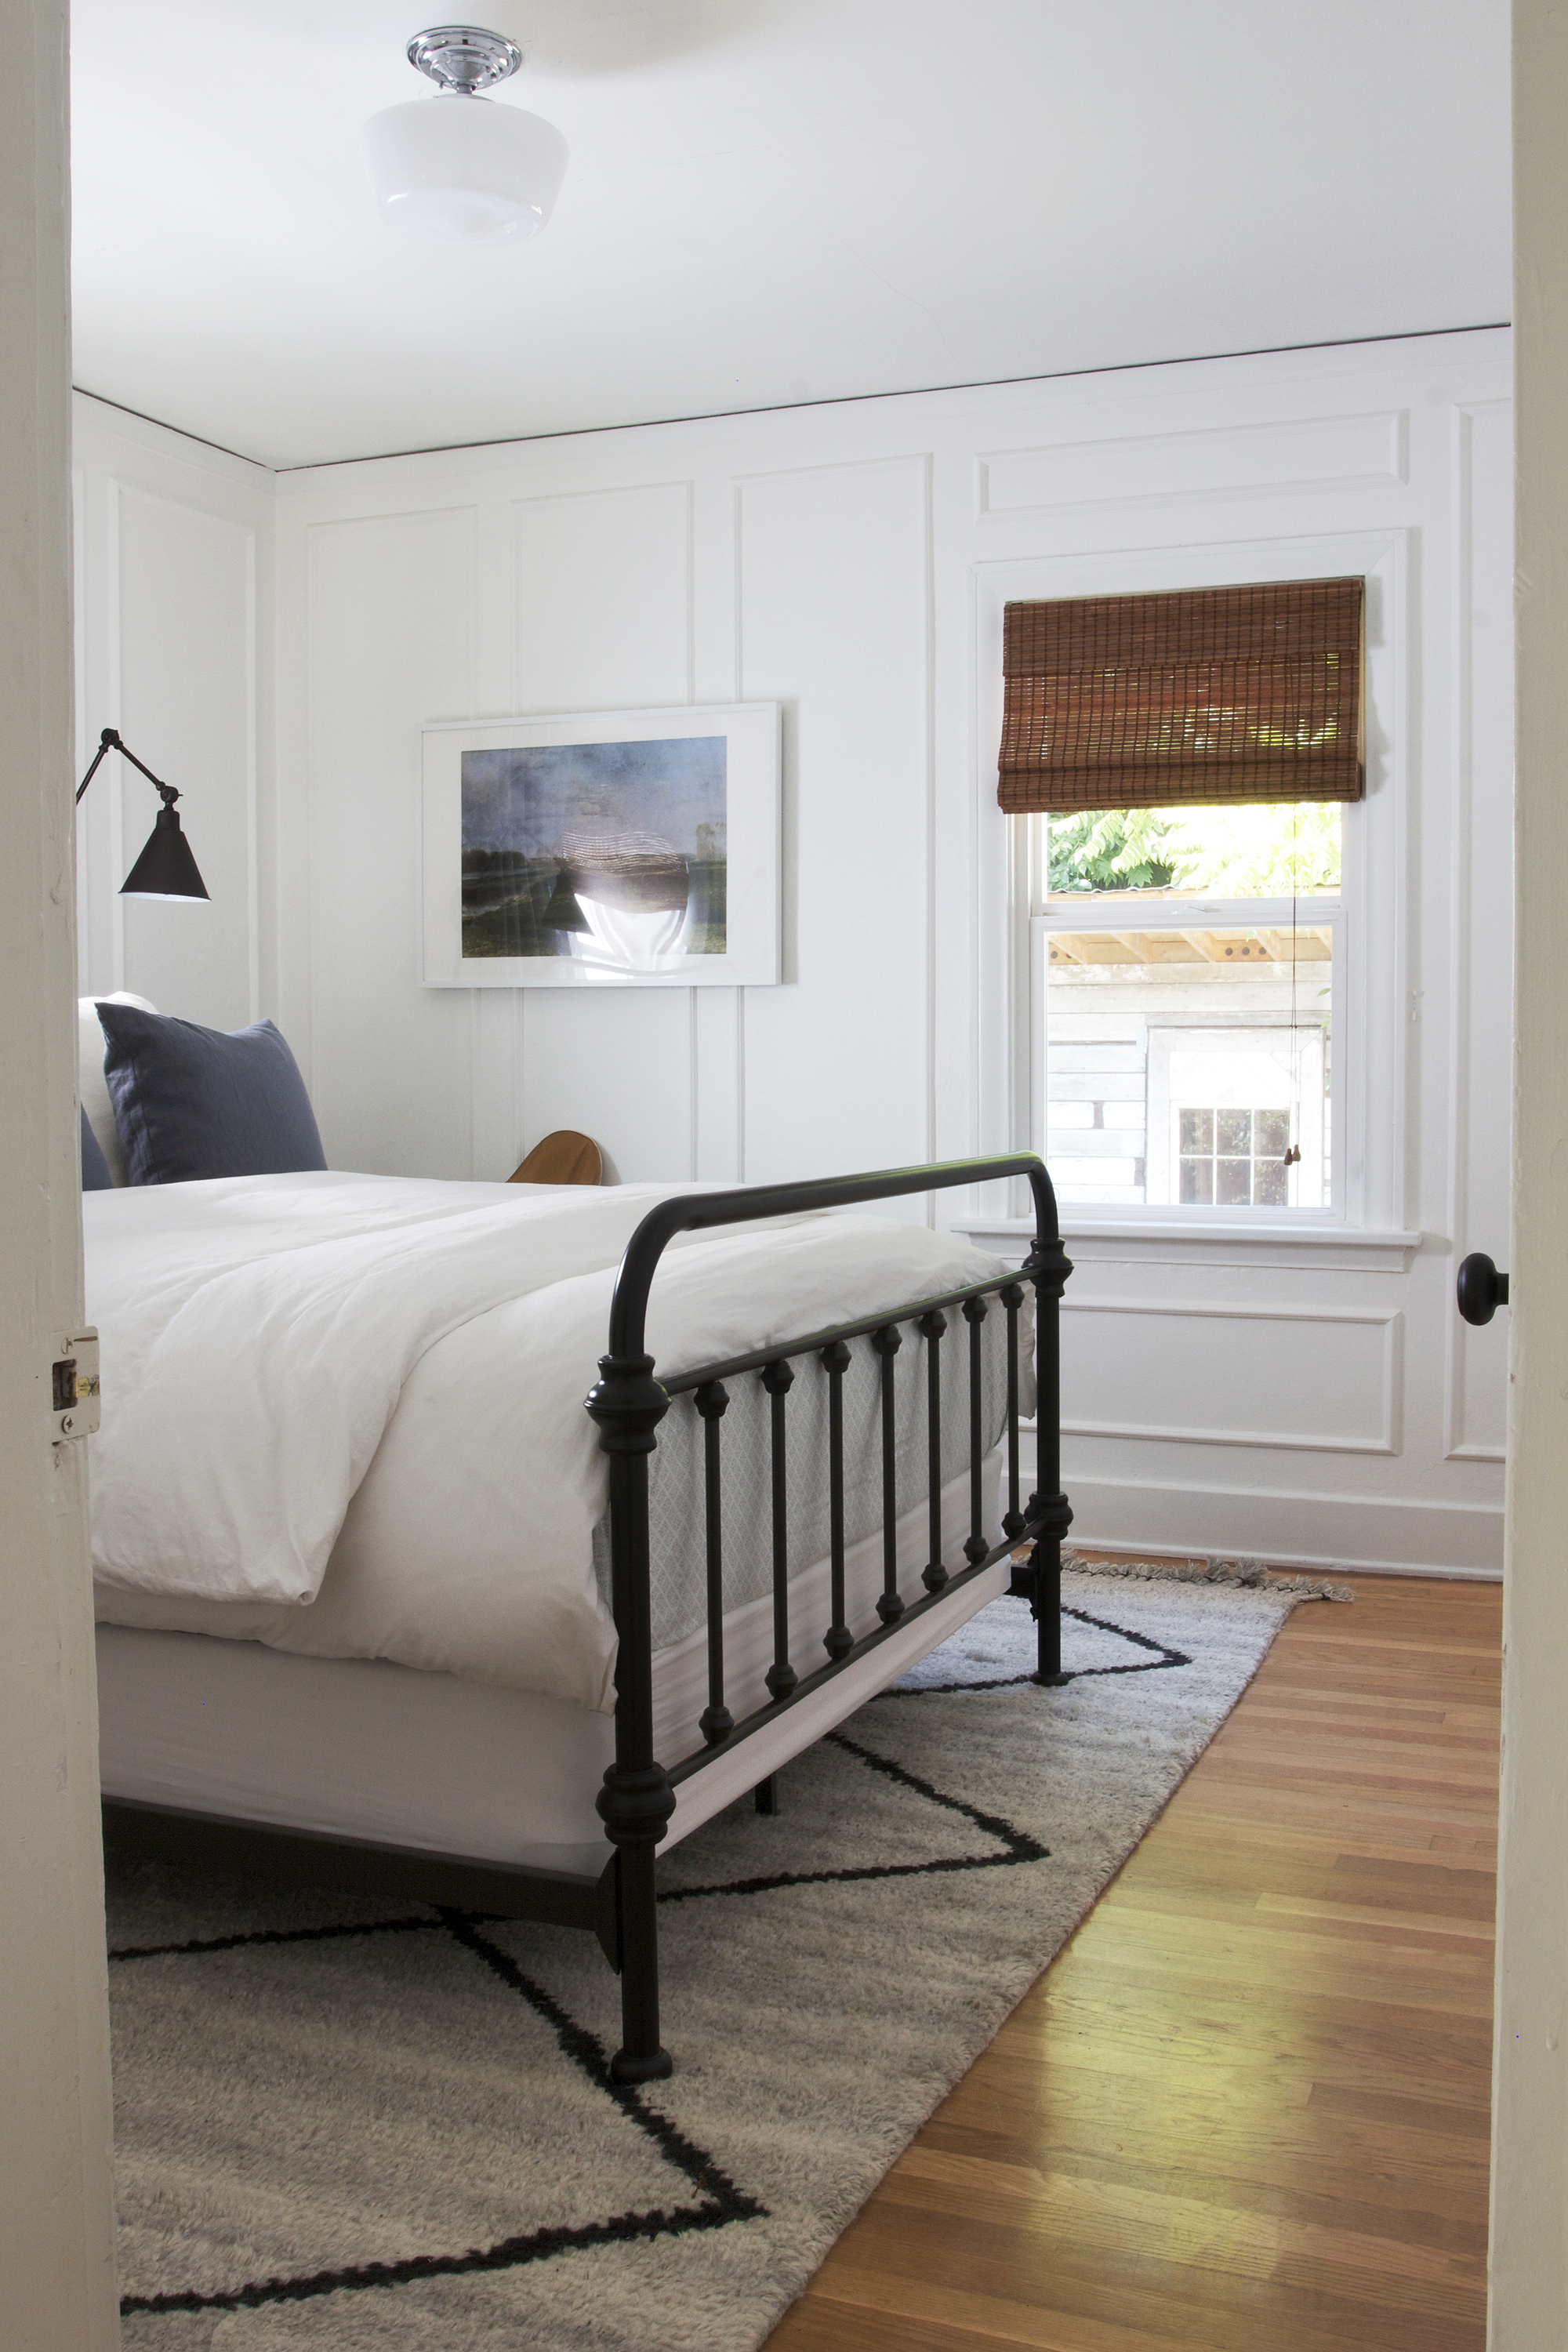 The Grit and Polish - Ravenna 2.0 Master Bedroom From Door 2.jpg